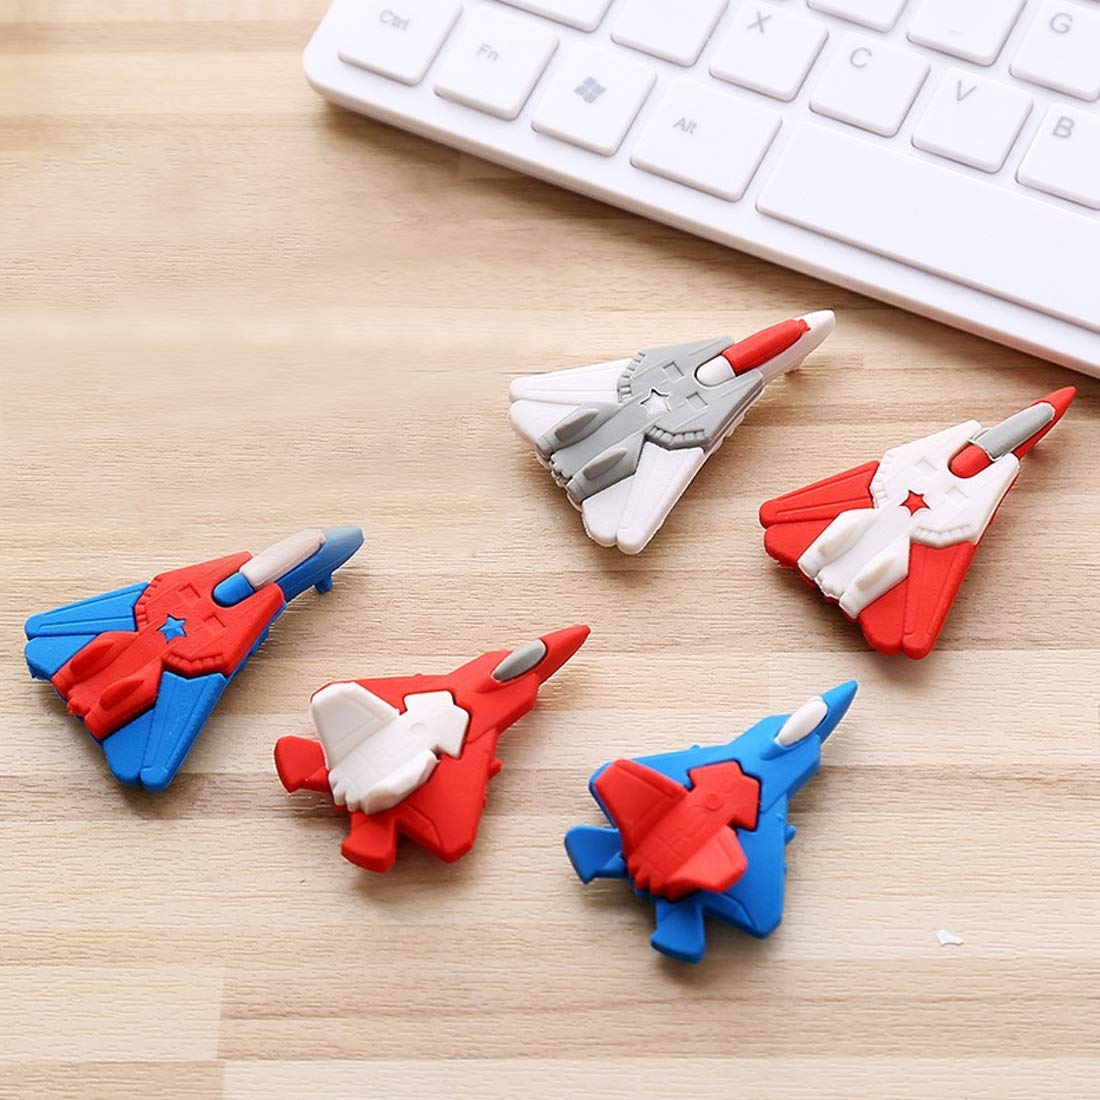 Your only family Durable Cute Cartoon Flat Shape Colorful Airplane Rubber Pencil Eraser School Supplies Children Creative Stationery, Size : 52x35mm Practical